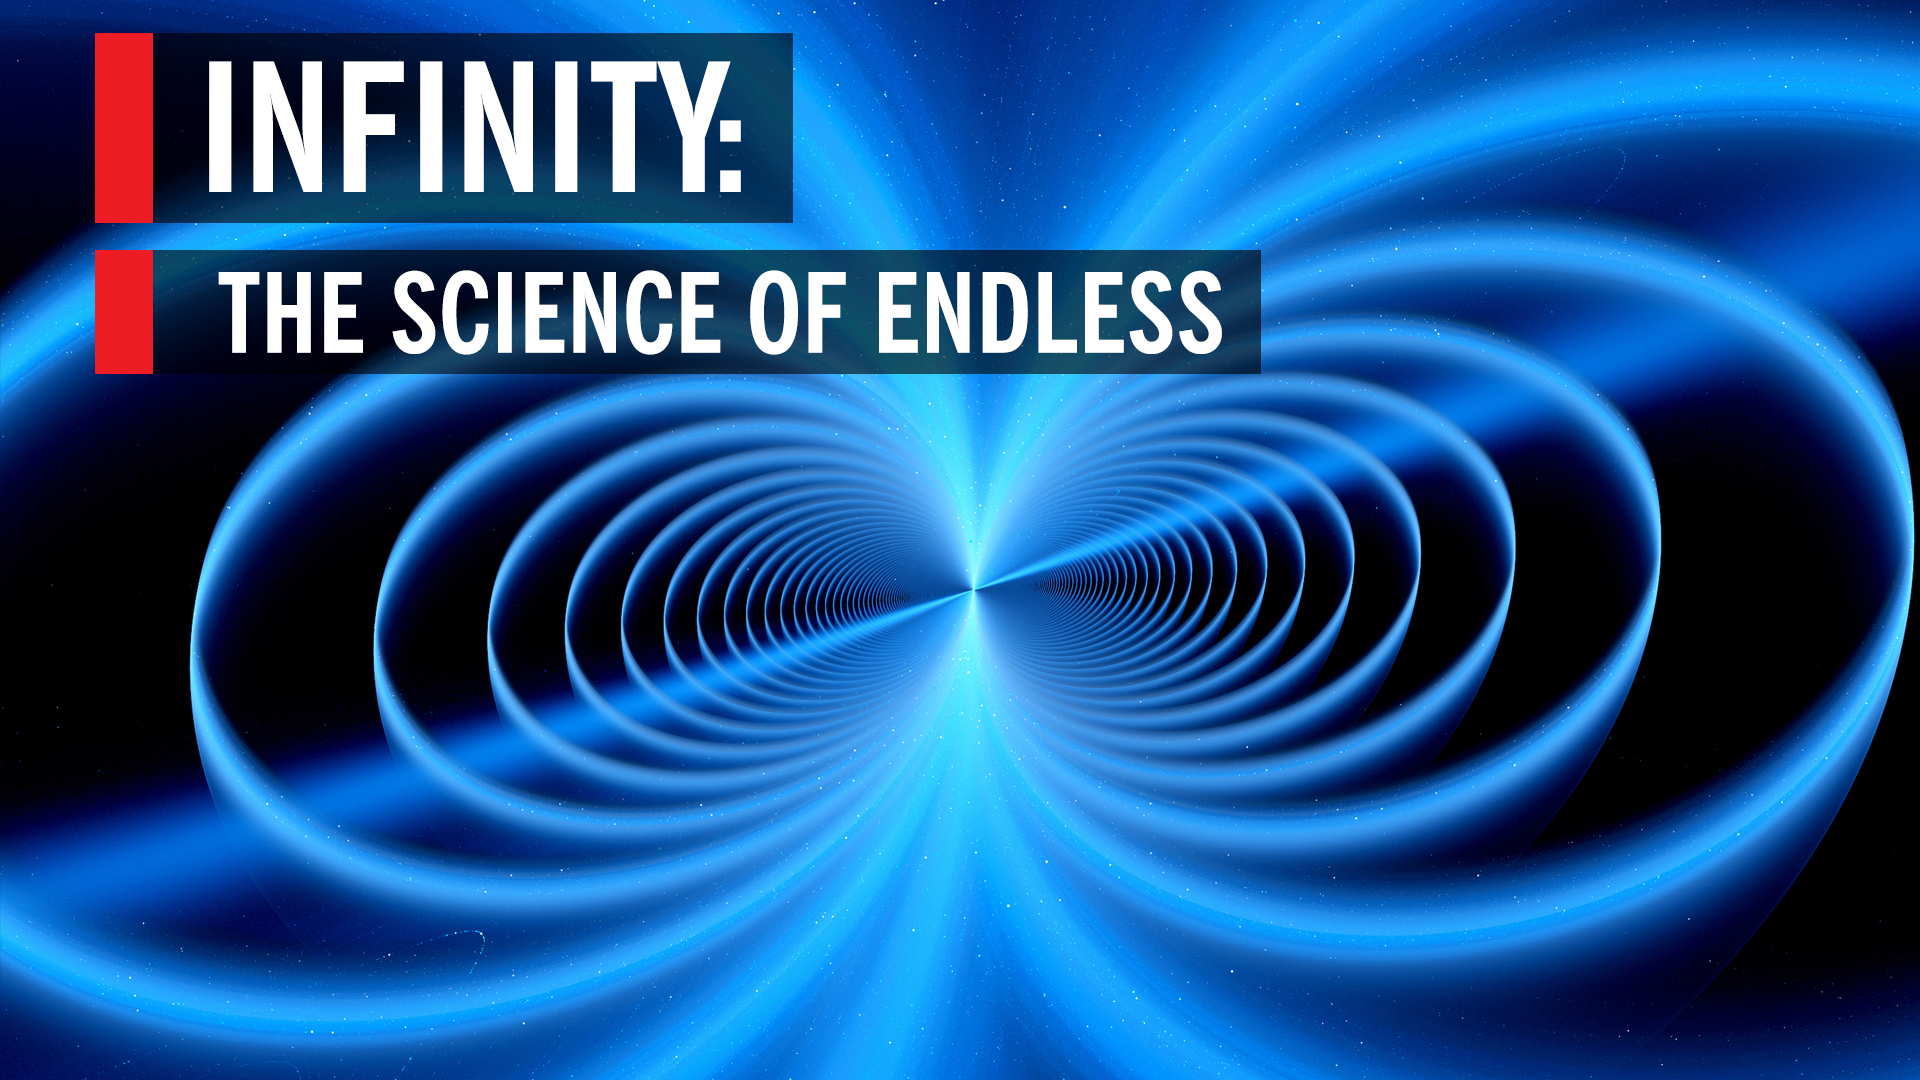 infinity the science of endless world science festival